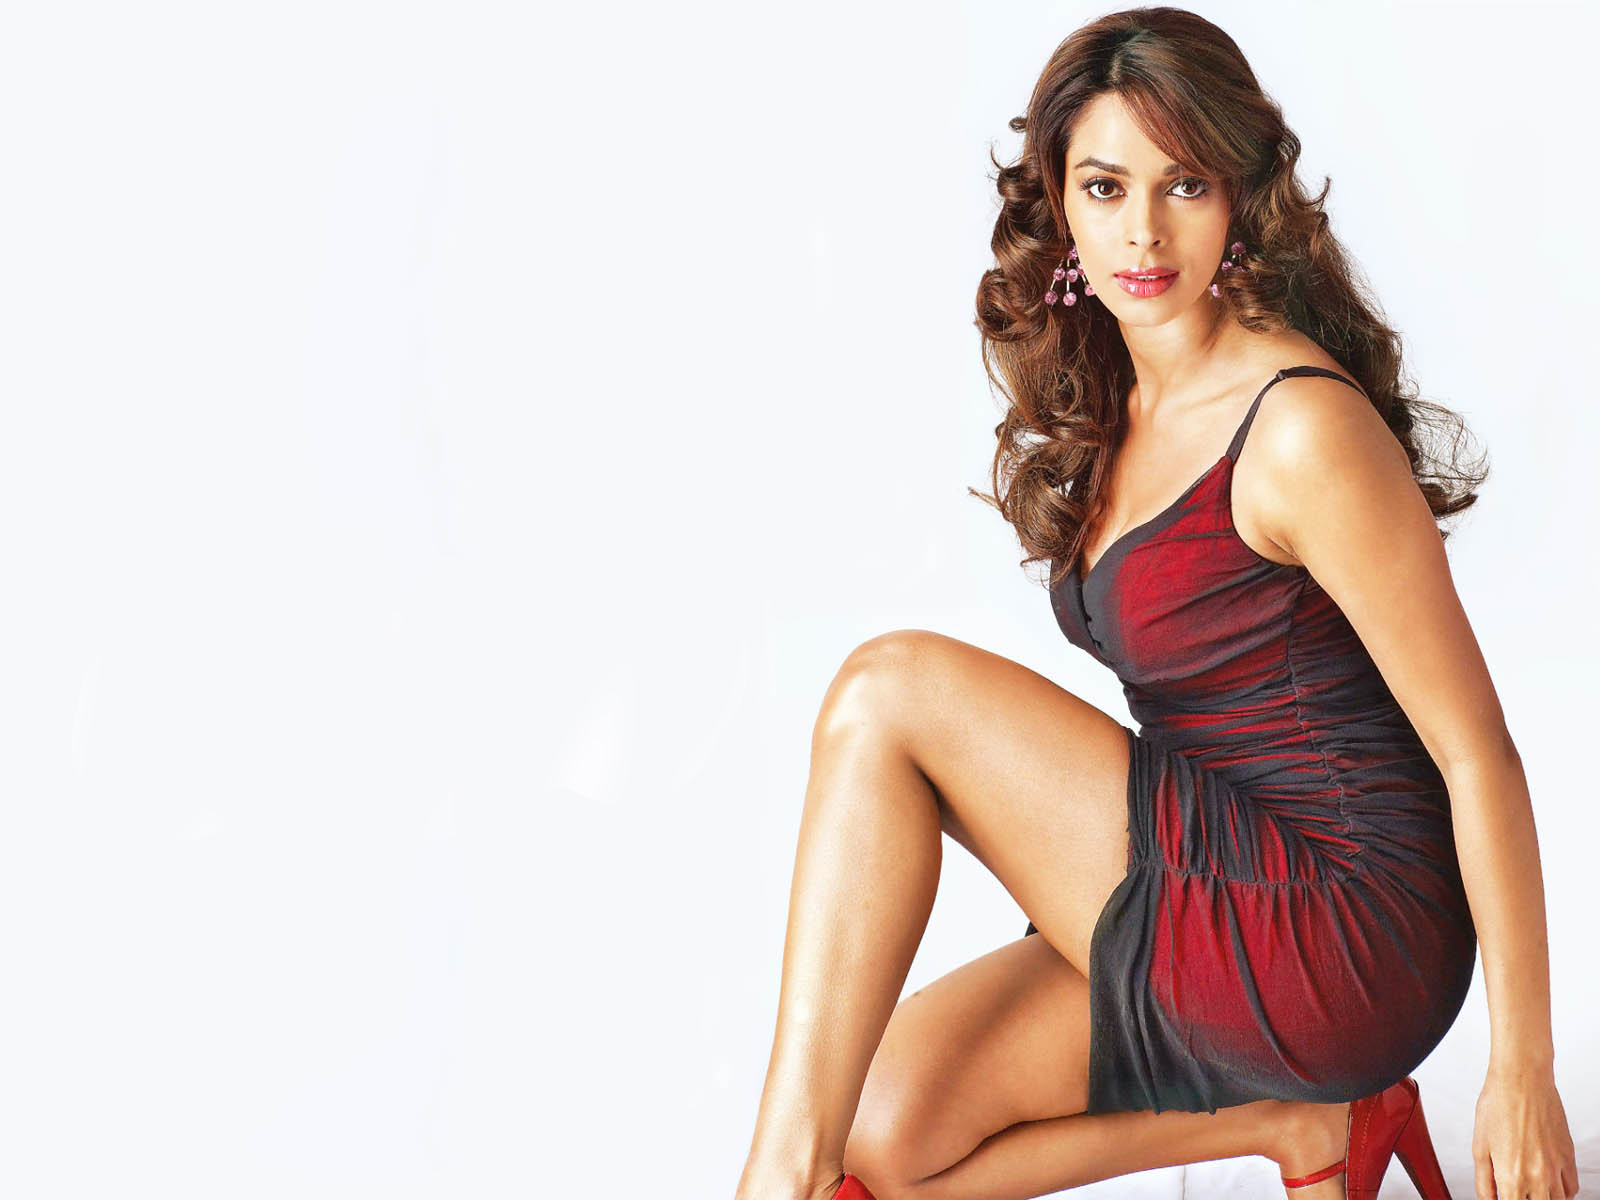 Bollywood Actresses Wallpapers Hd 2013: World Celebrities HD Wallpapers: Most 10 Bollywood Hot